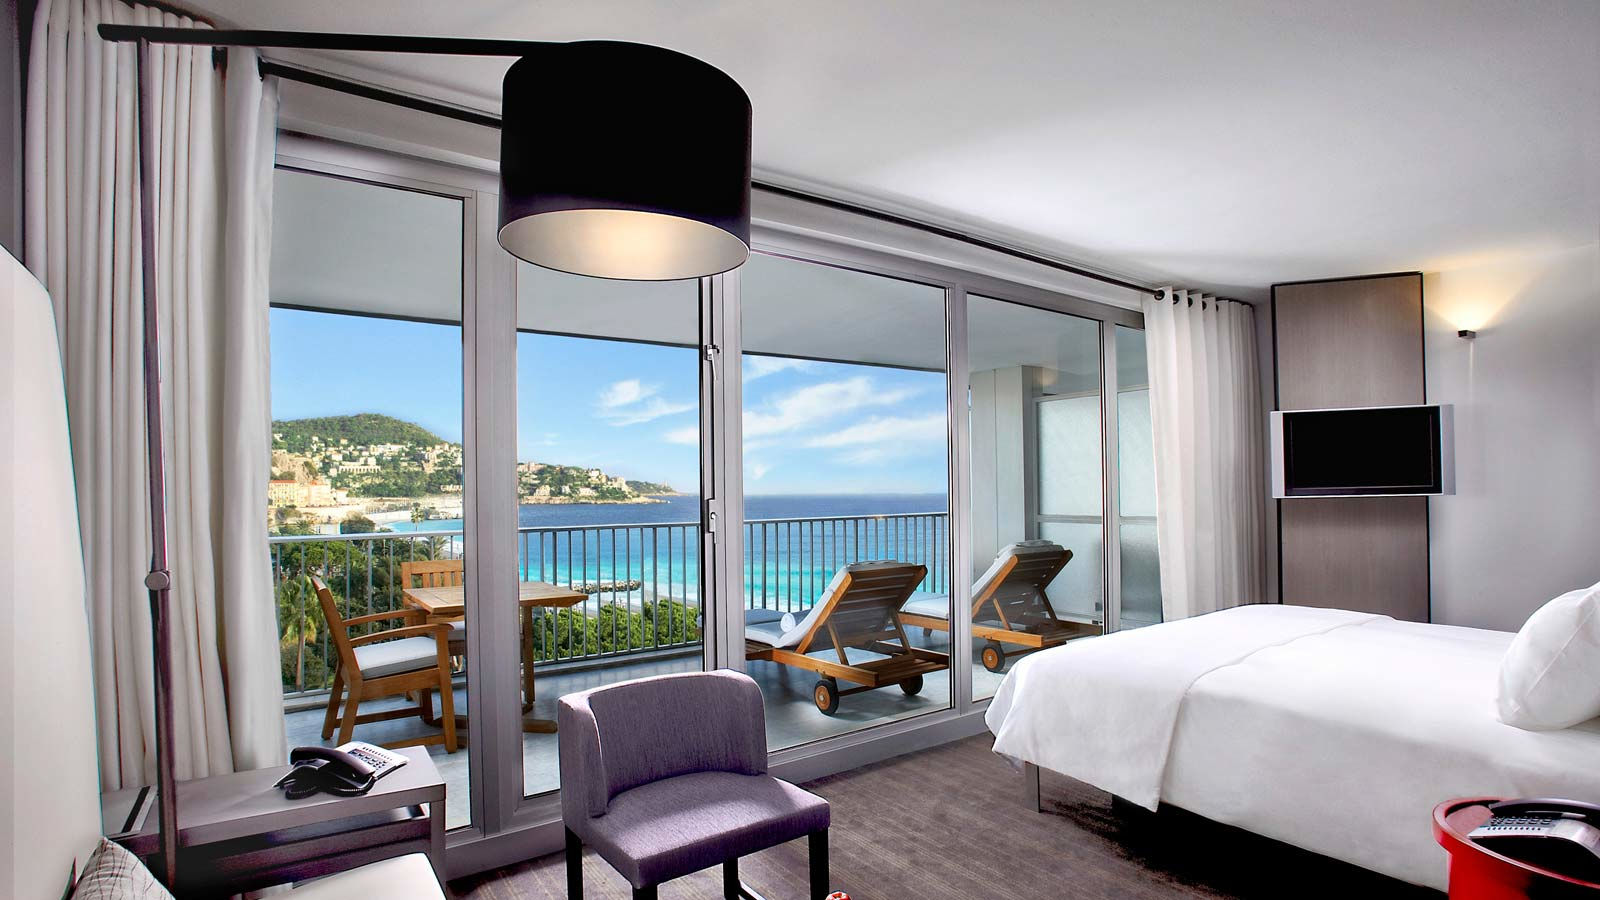 Executive Room Gardens & Sea View – Terrace In Le Meridien Nice